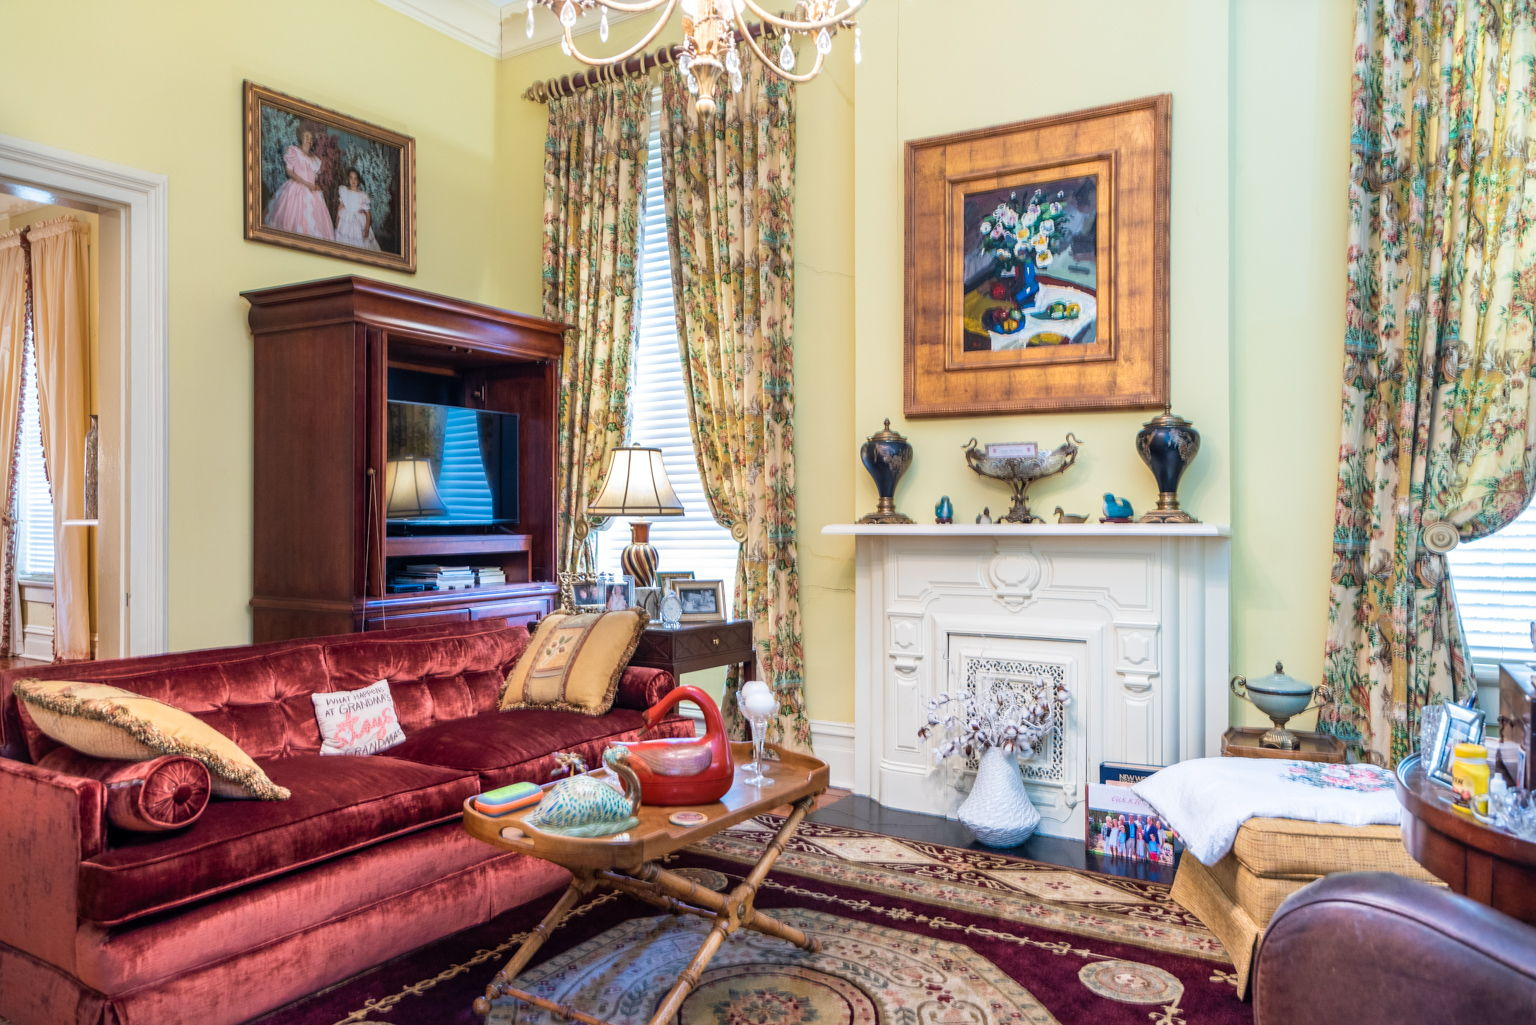 And a comfortable and very private sitting room